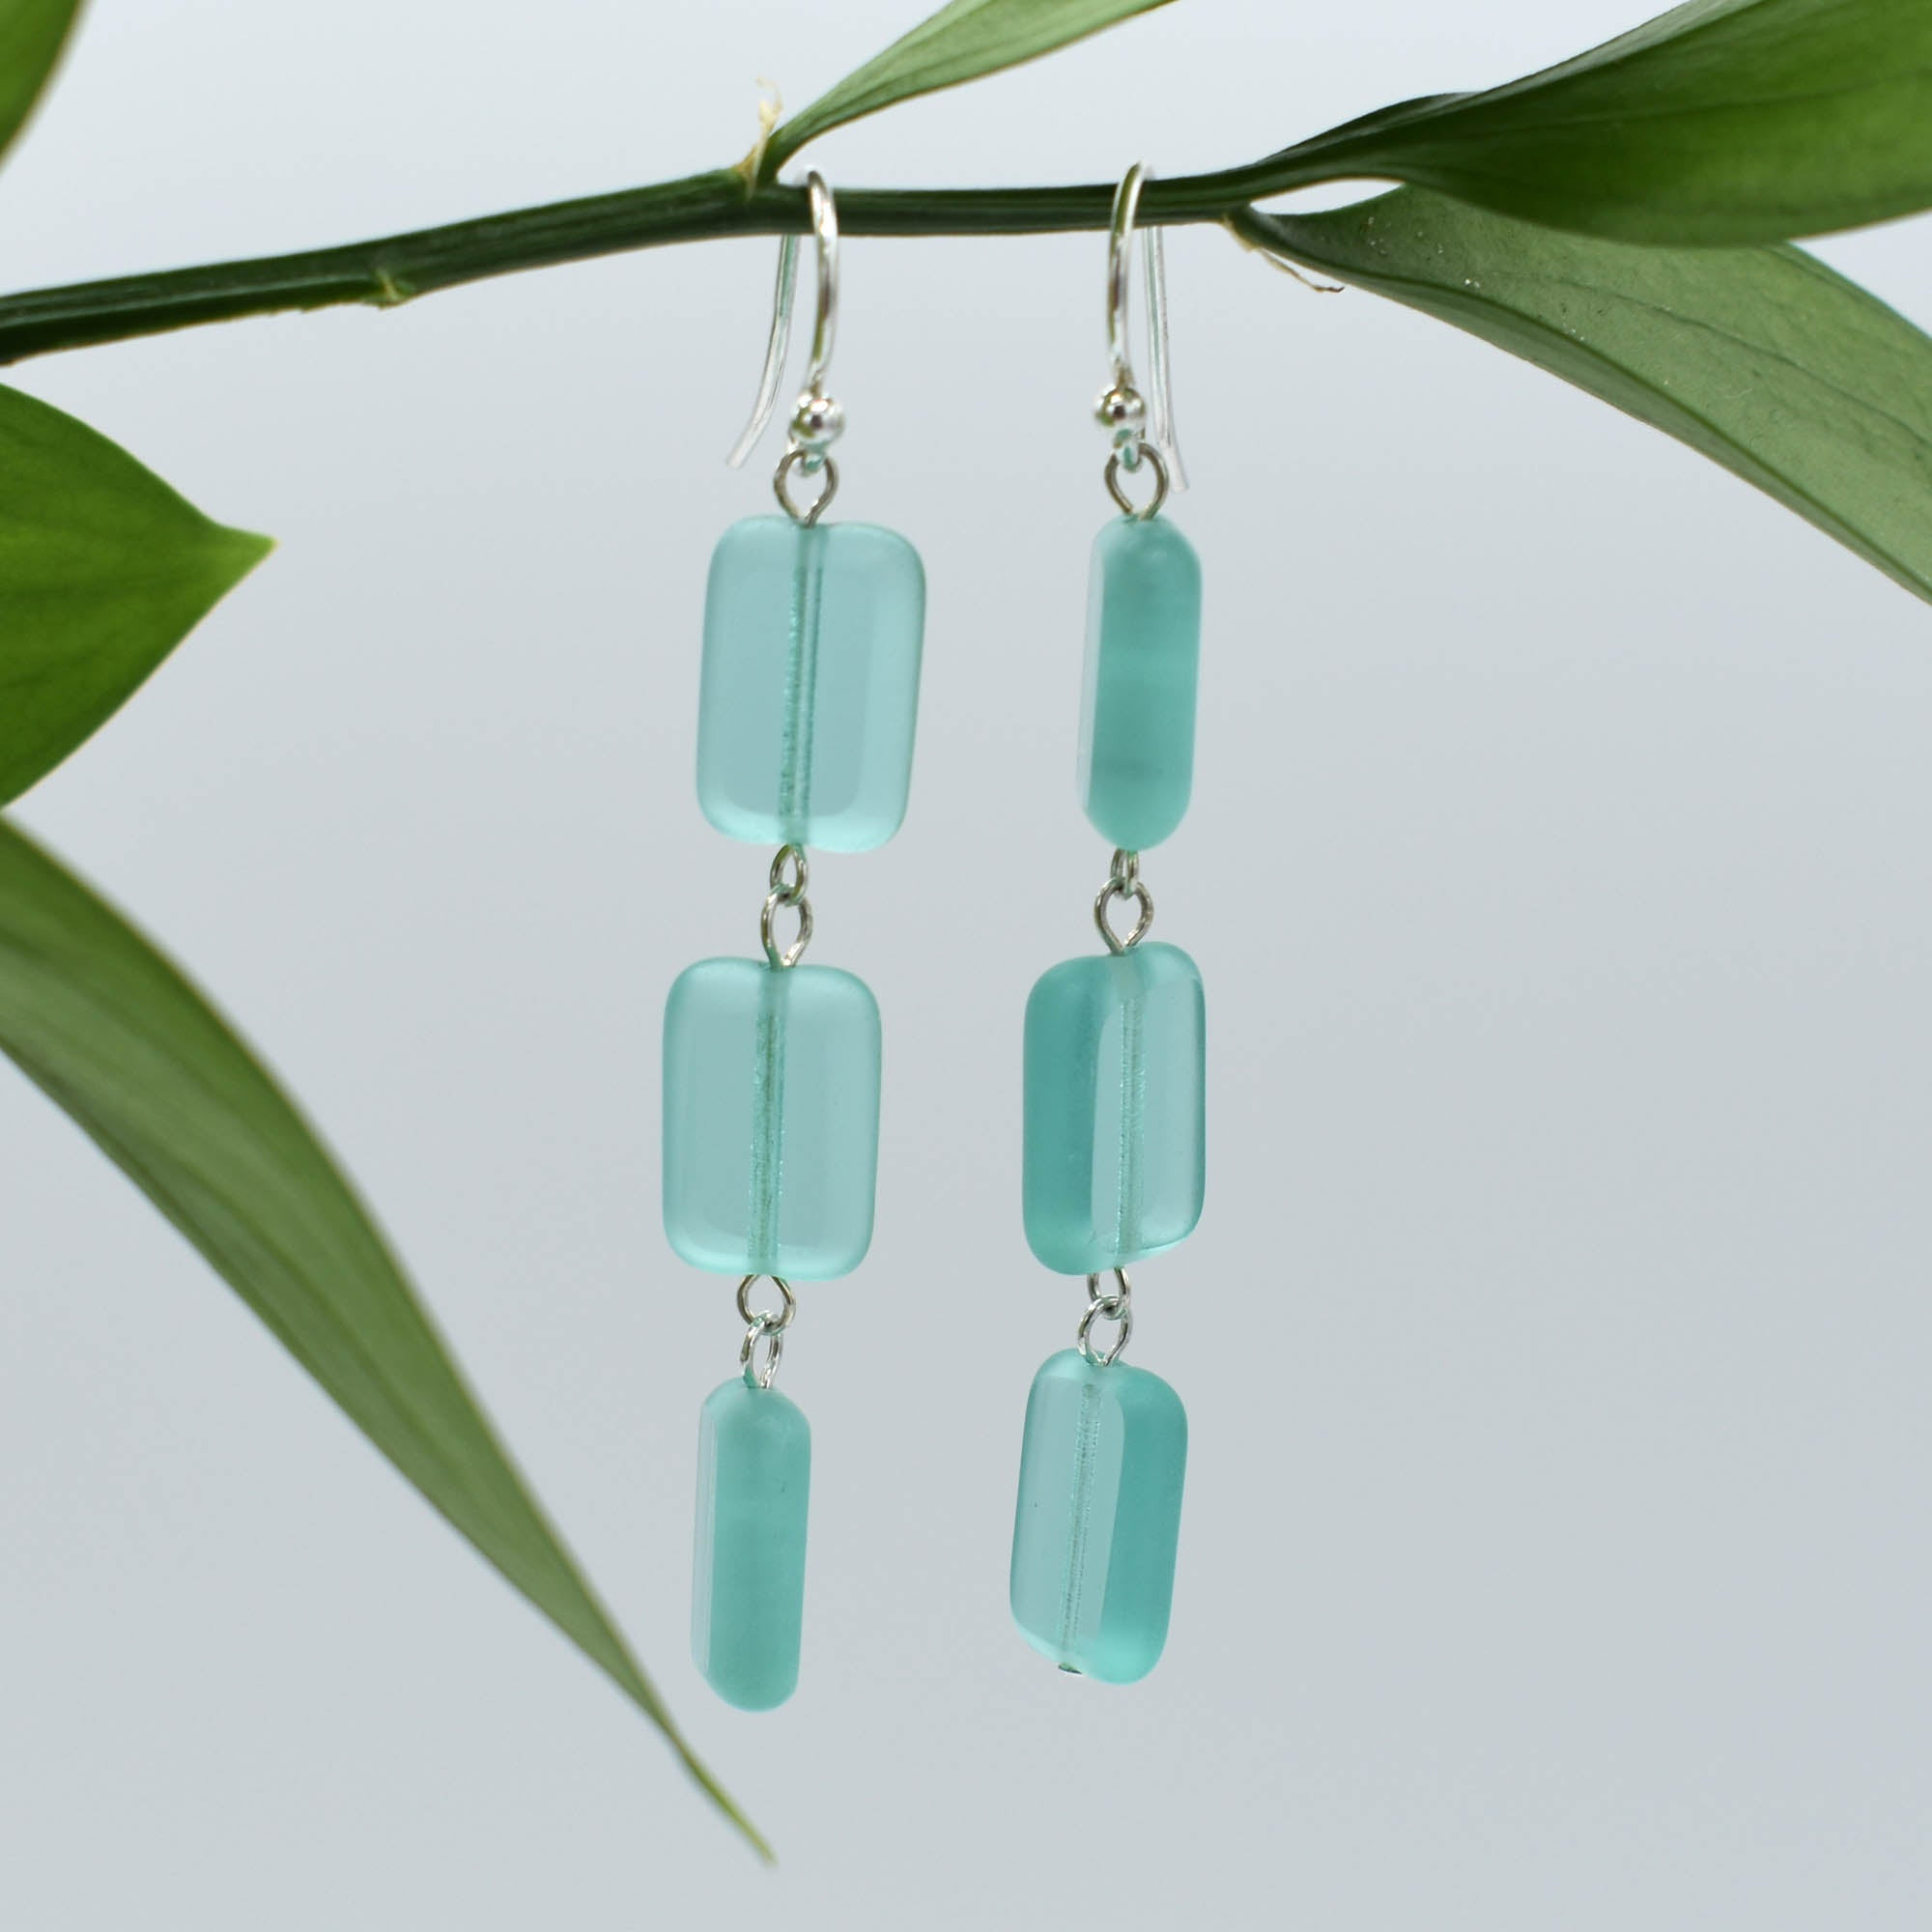 Trilogy 3-Tile Earrings in Seaglass Teal